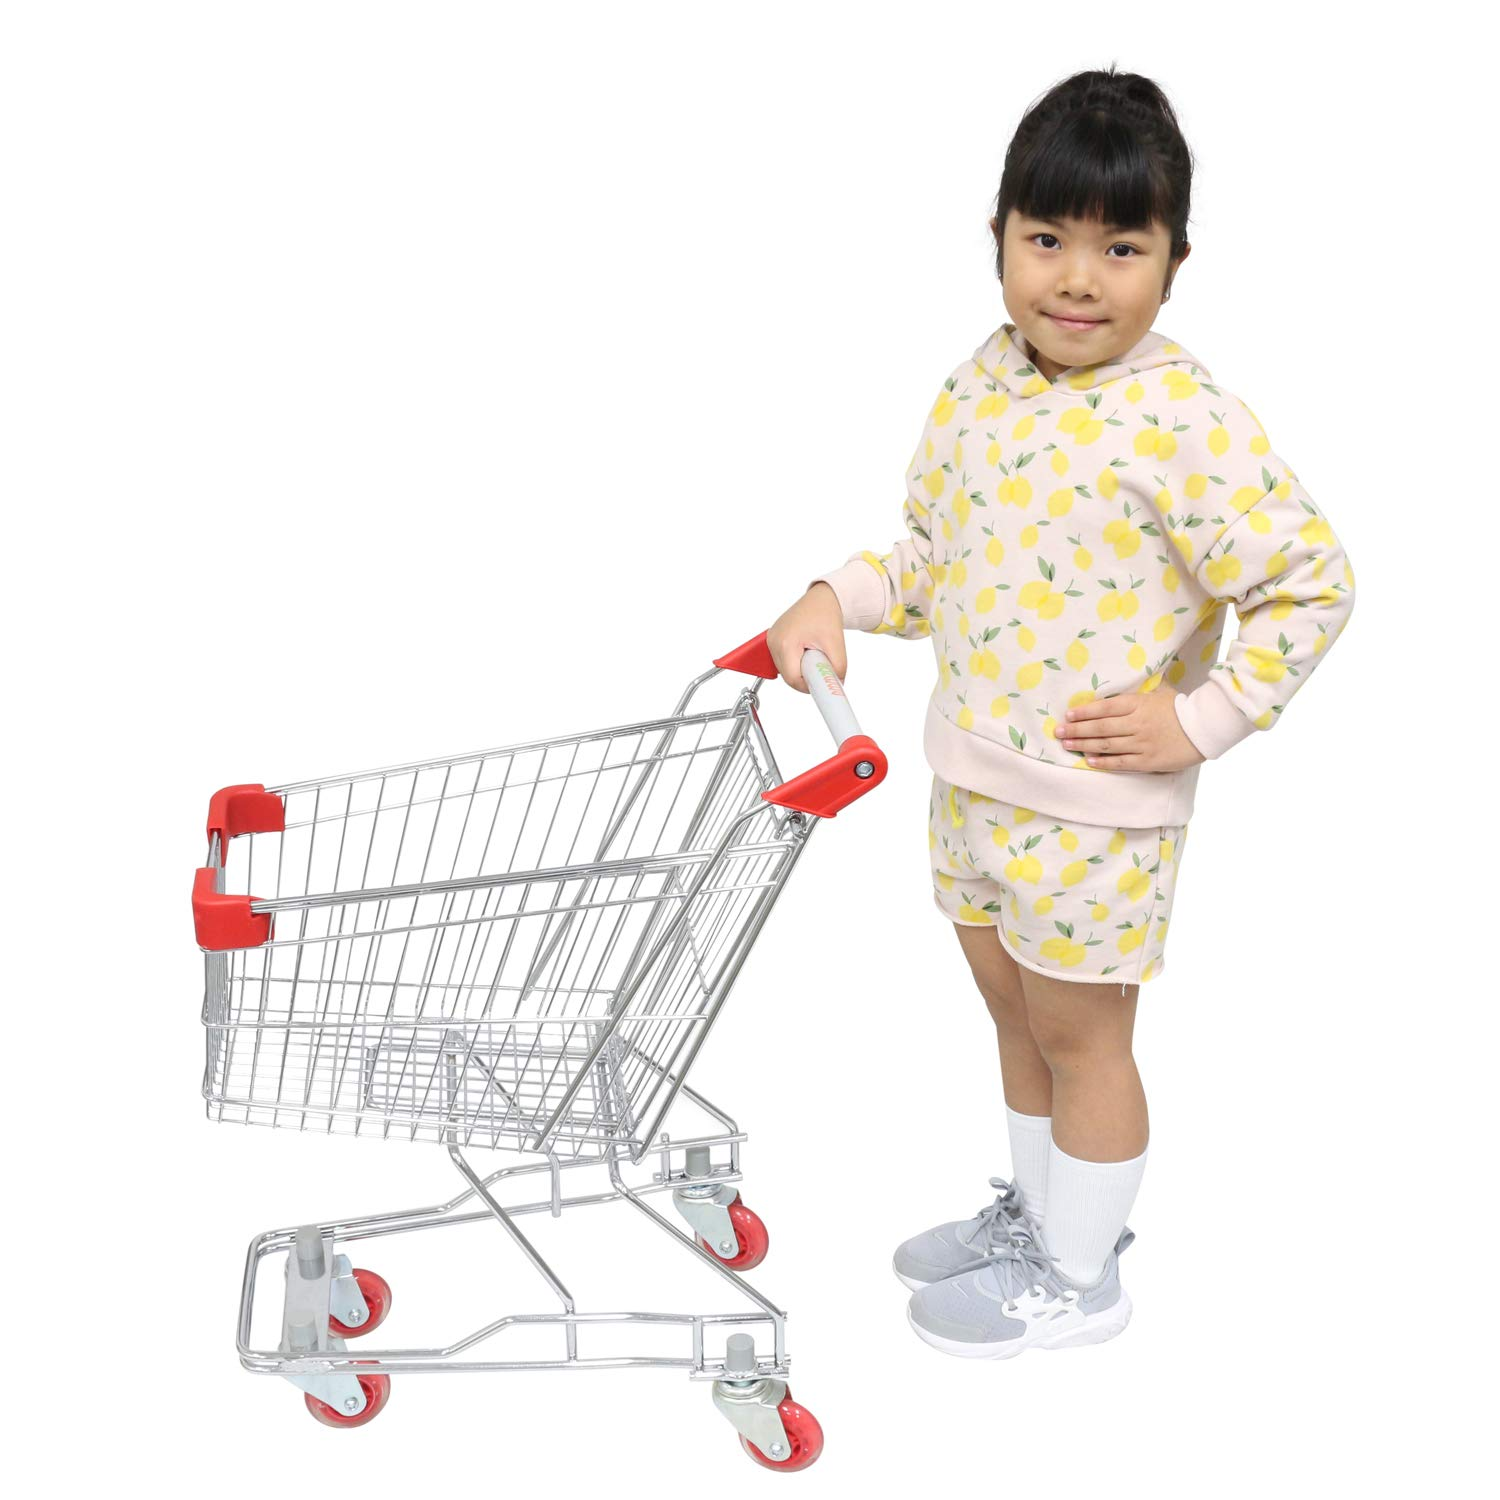 Emmzoe ''The Little Shopper'' Real Life Kids Mini Retail Grocery Shopping Cart Toy (Chrome Frame) by Emmzoe